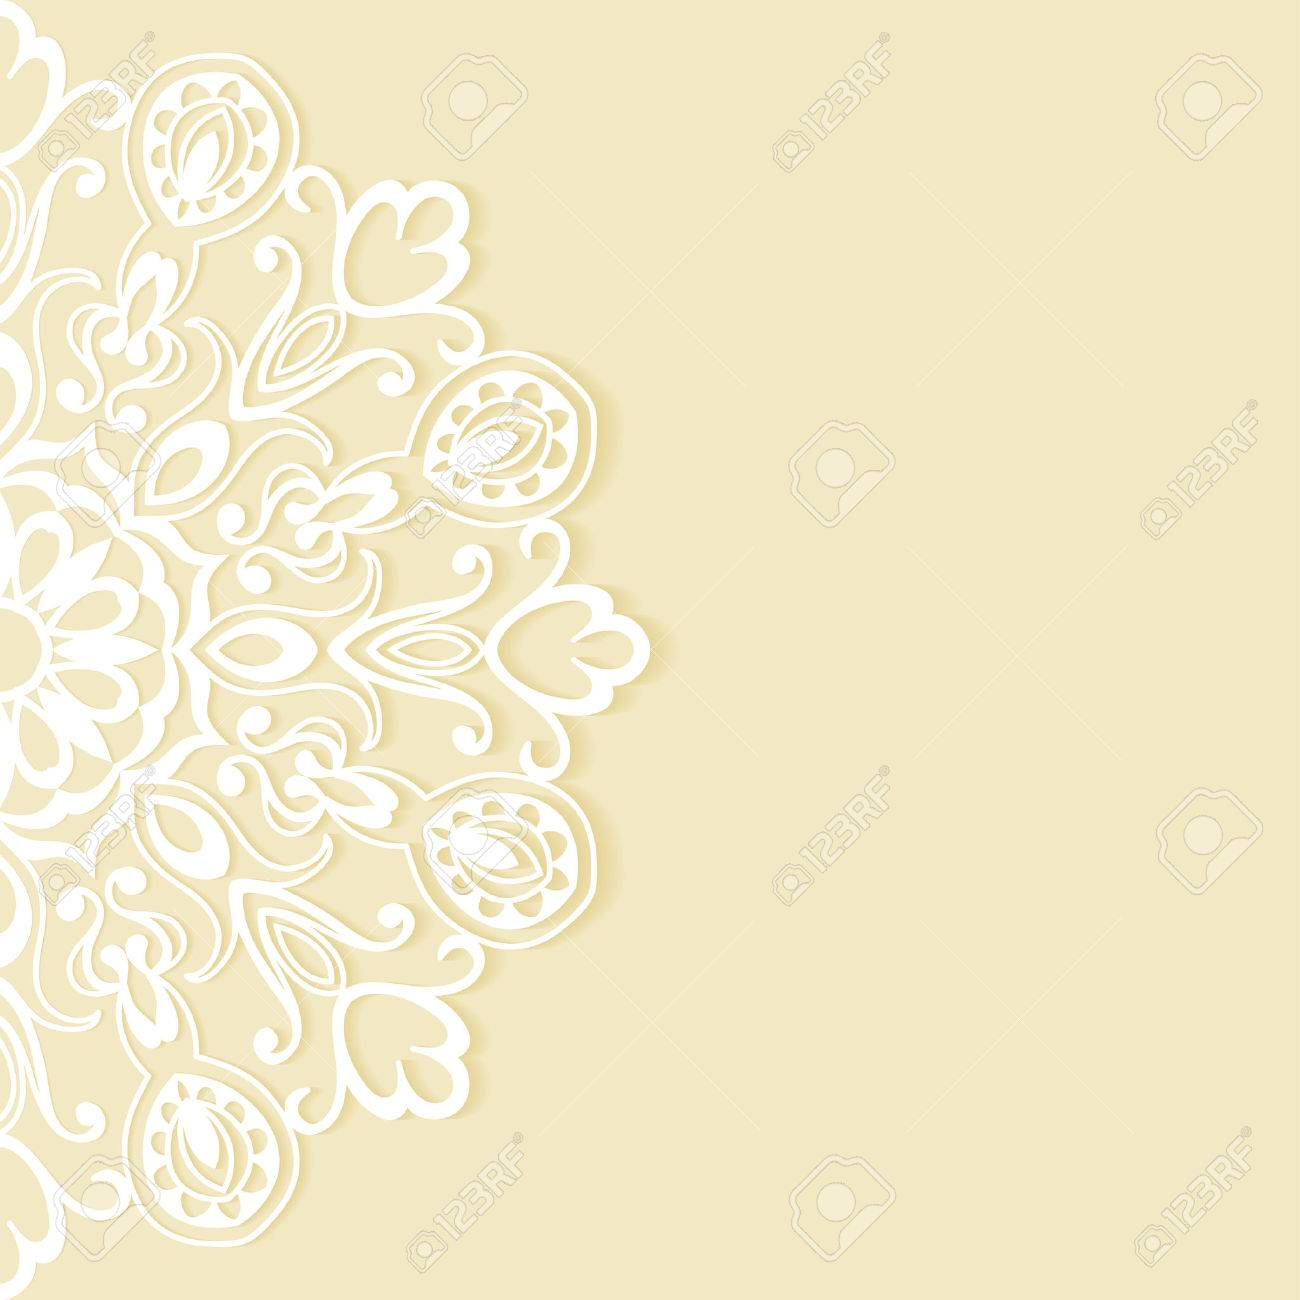 Wedding Invitation Or Greeting Card Design With Lace Pattern ...